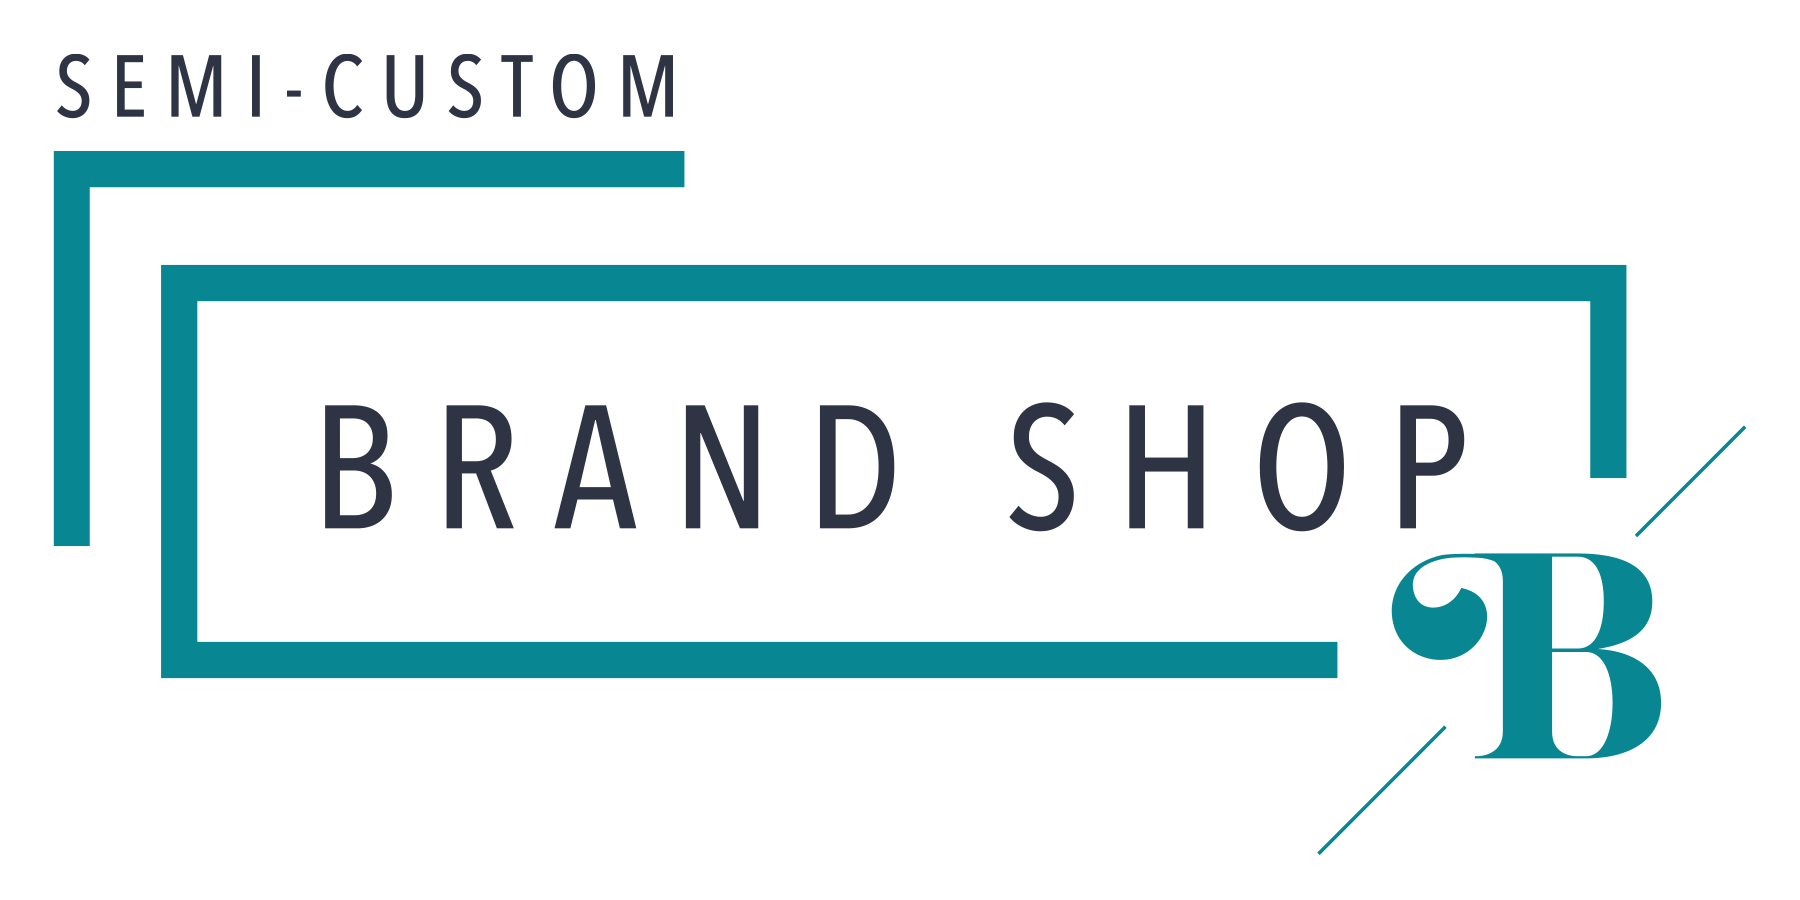 semi custom brand shop